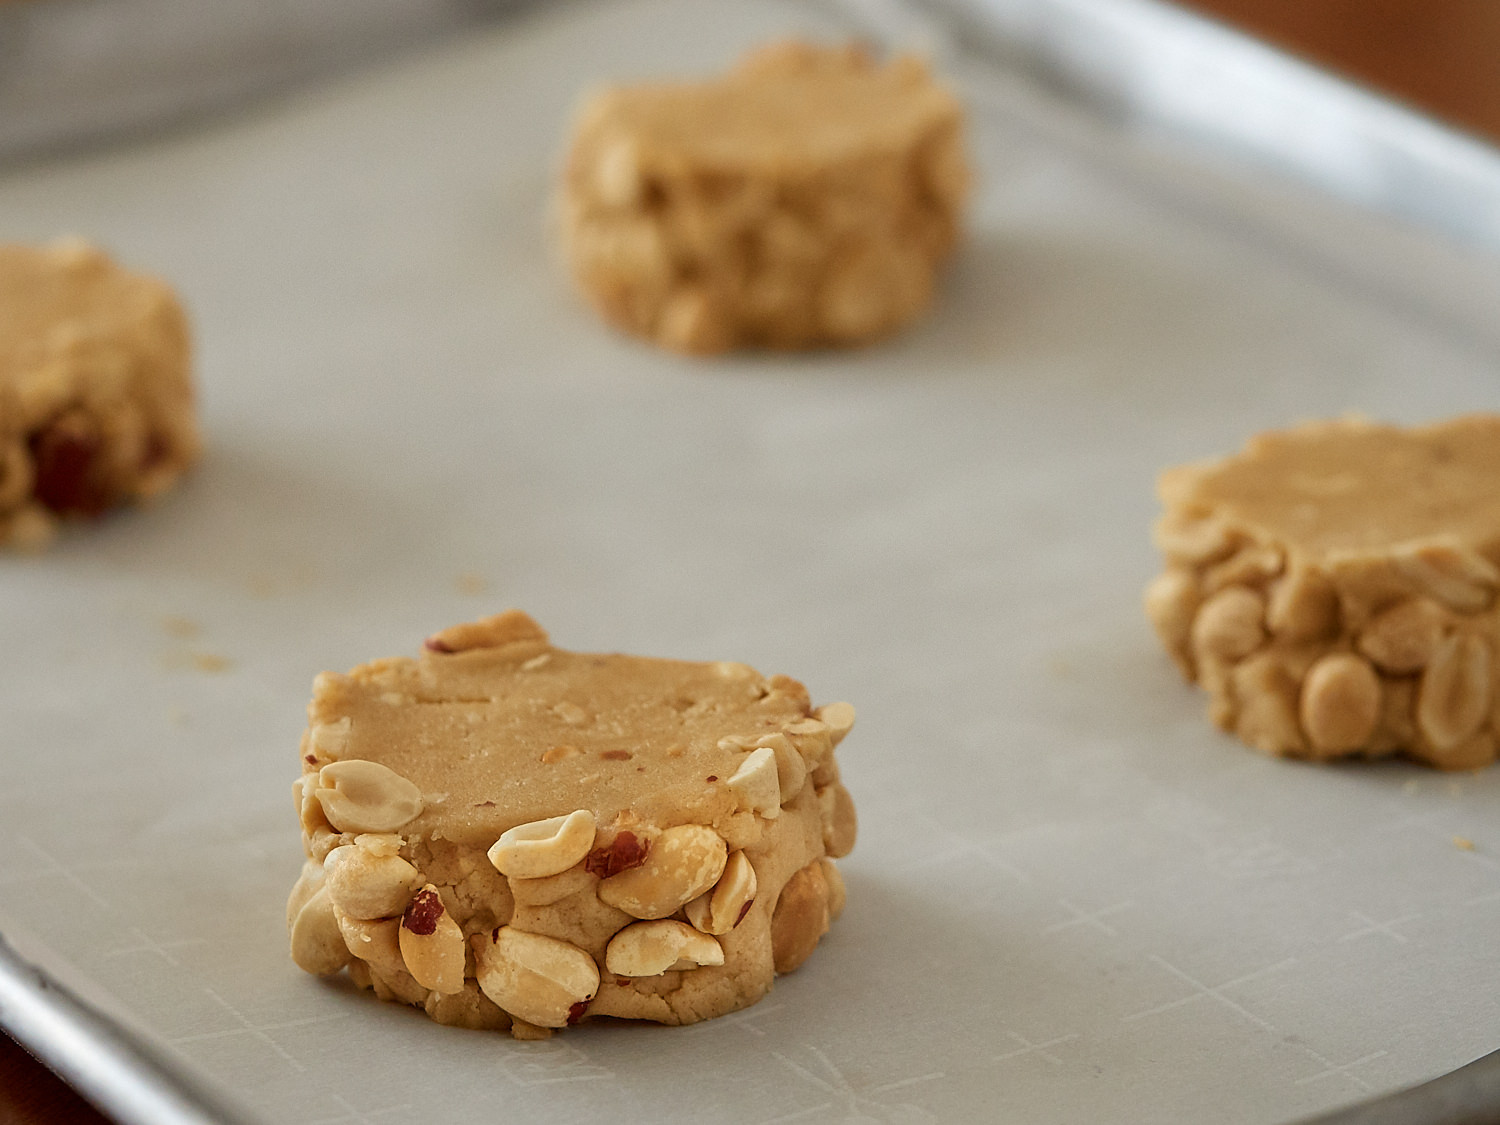 The dough for these cookies is sliced an inch thick to make a big, fantastic cookie!